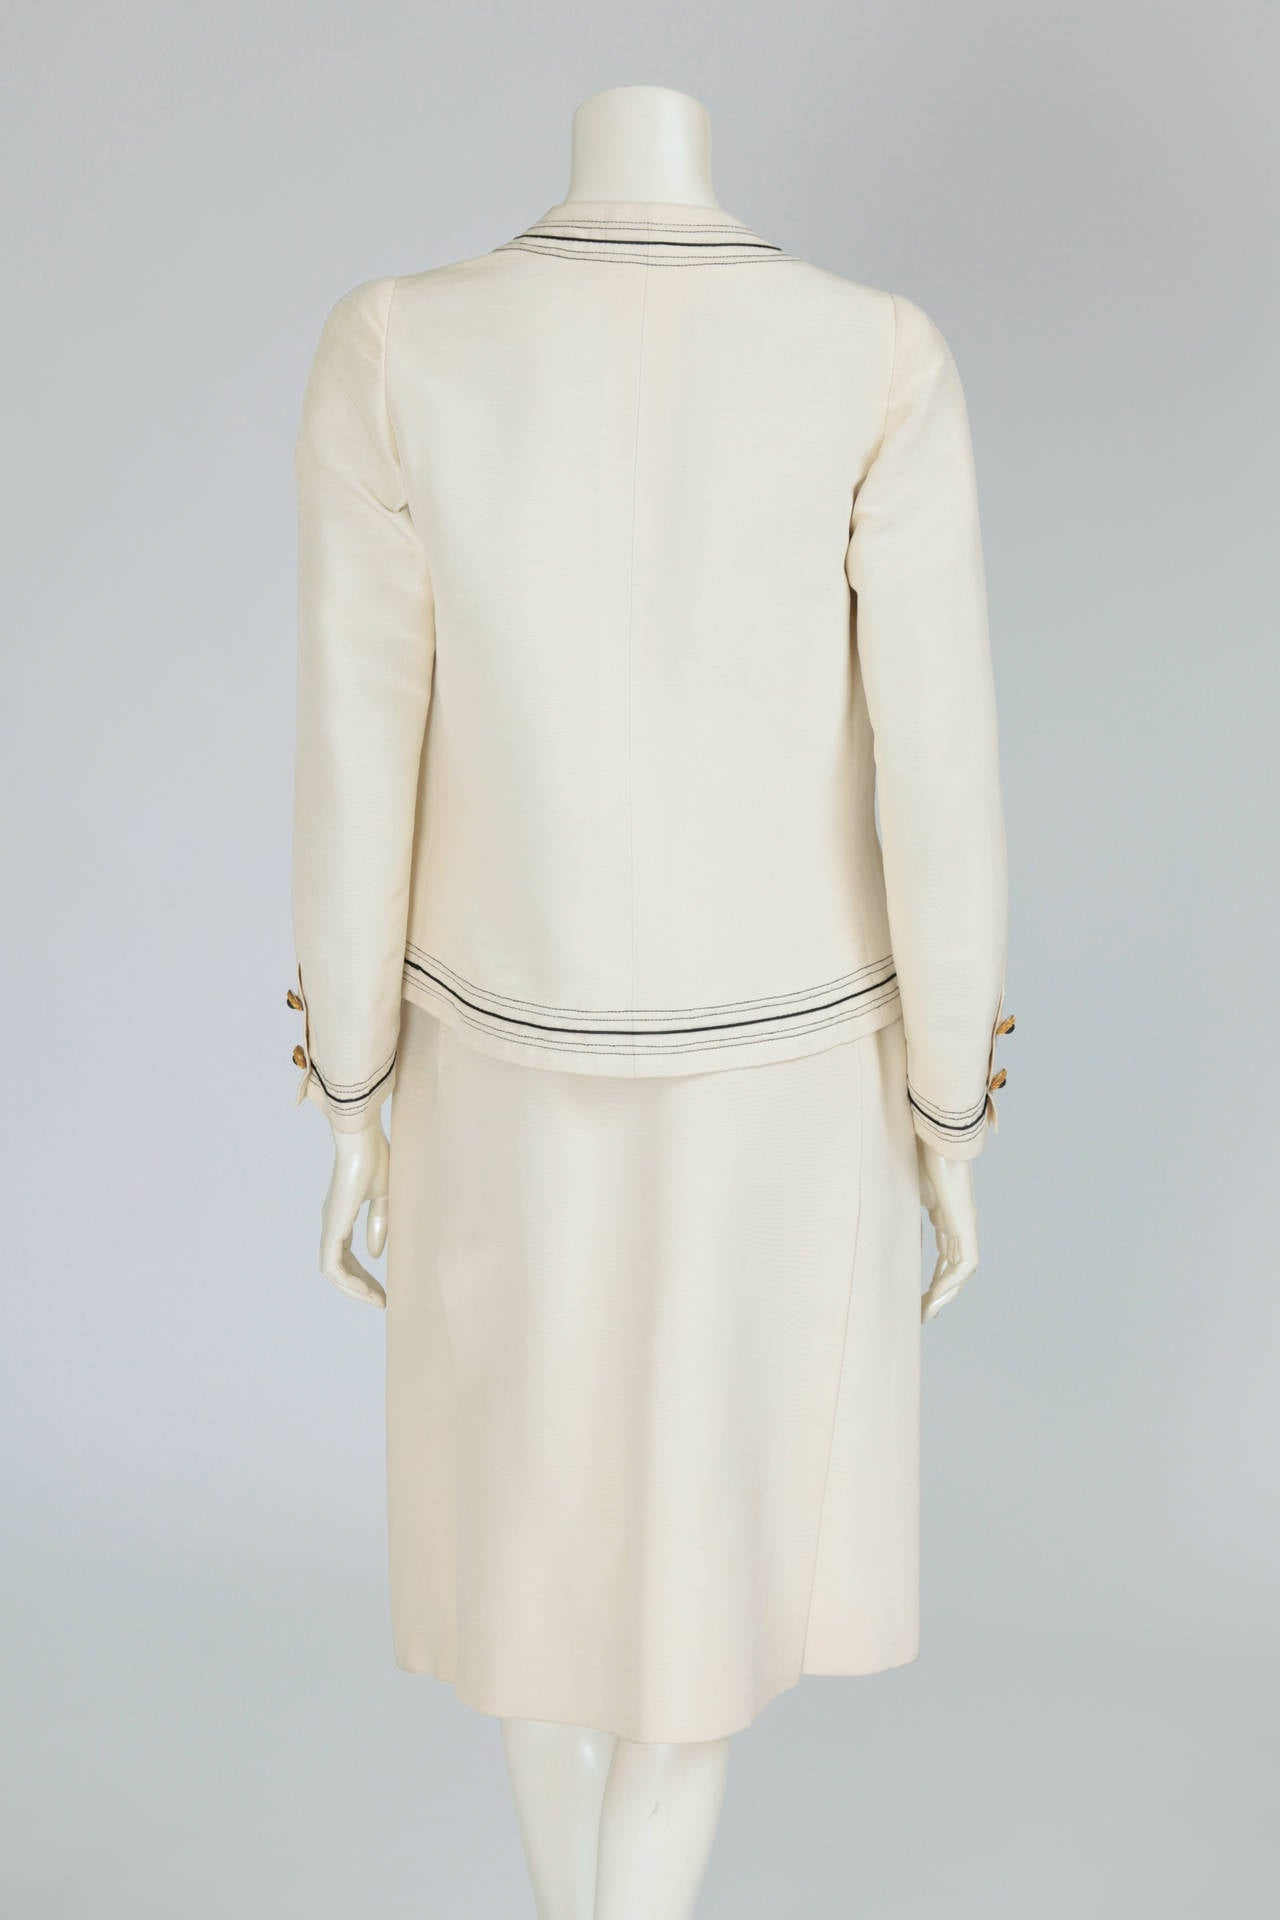 Gabrielle Chanel Haute Couture Three Piece Skirt Suit, Circa 1968-1970 For Sale 1